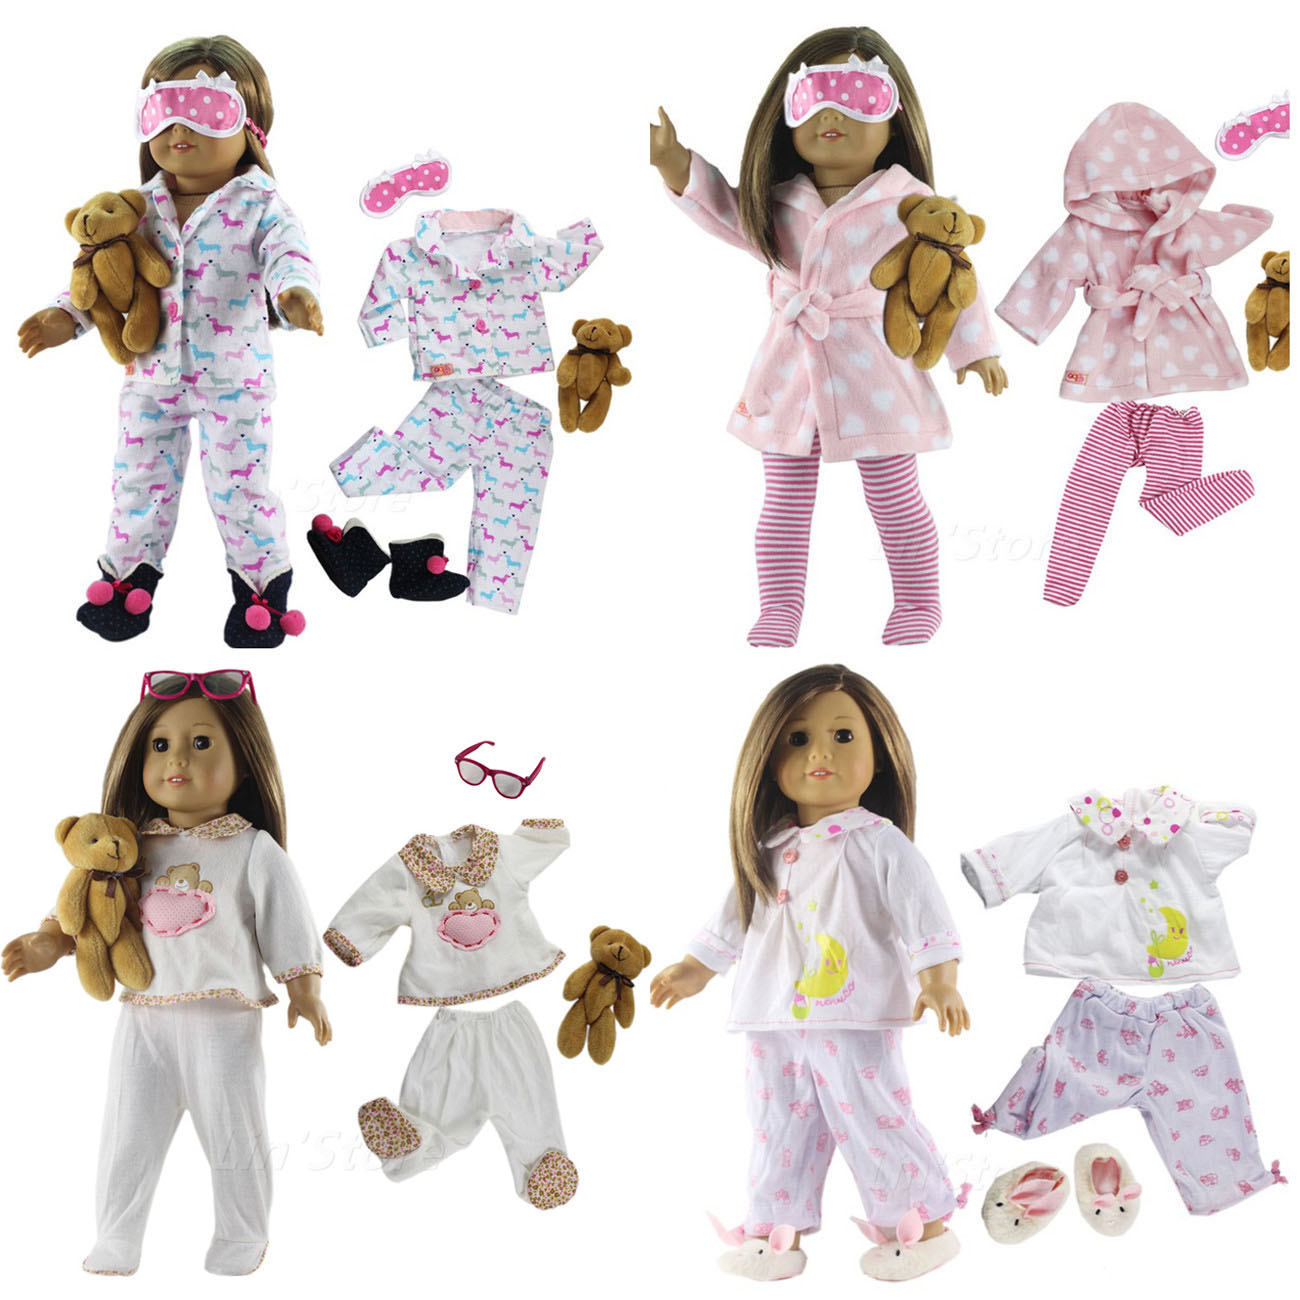 Many Style Sleepwear For Choice 1 Set Doll Clothes Top+pants For 18 Inch American Doll Handmade High Quality 18